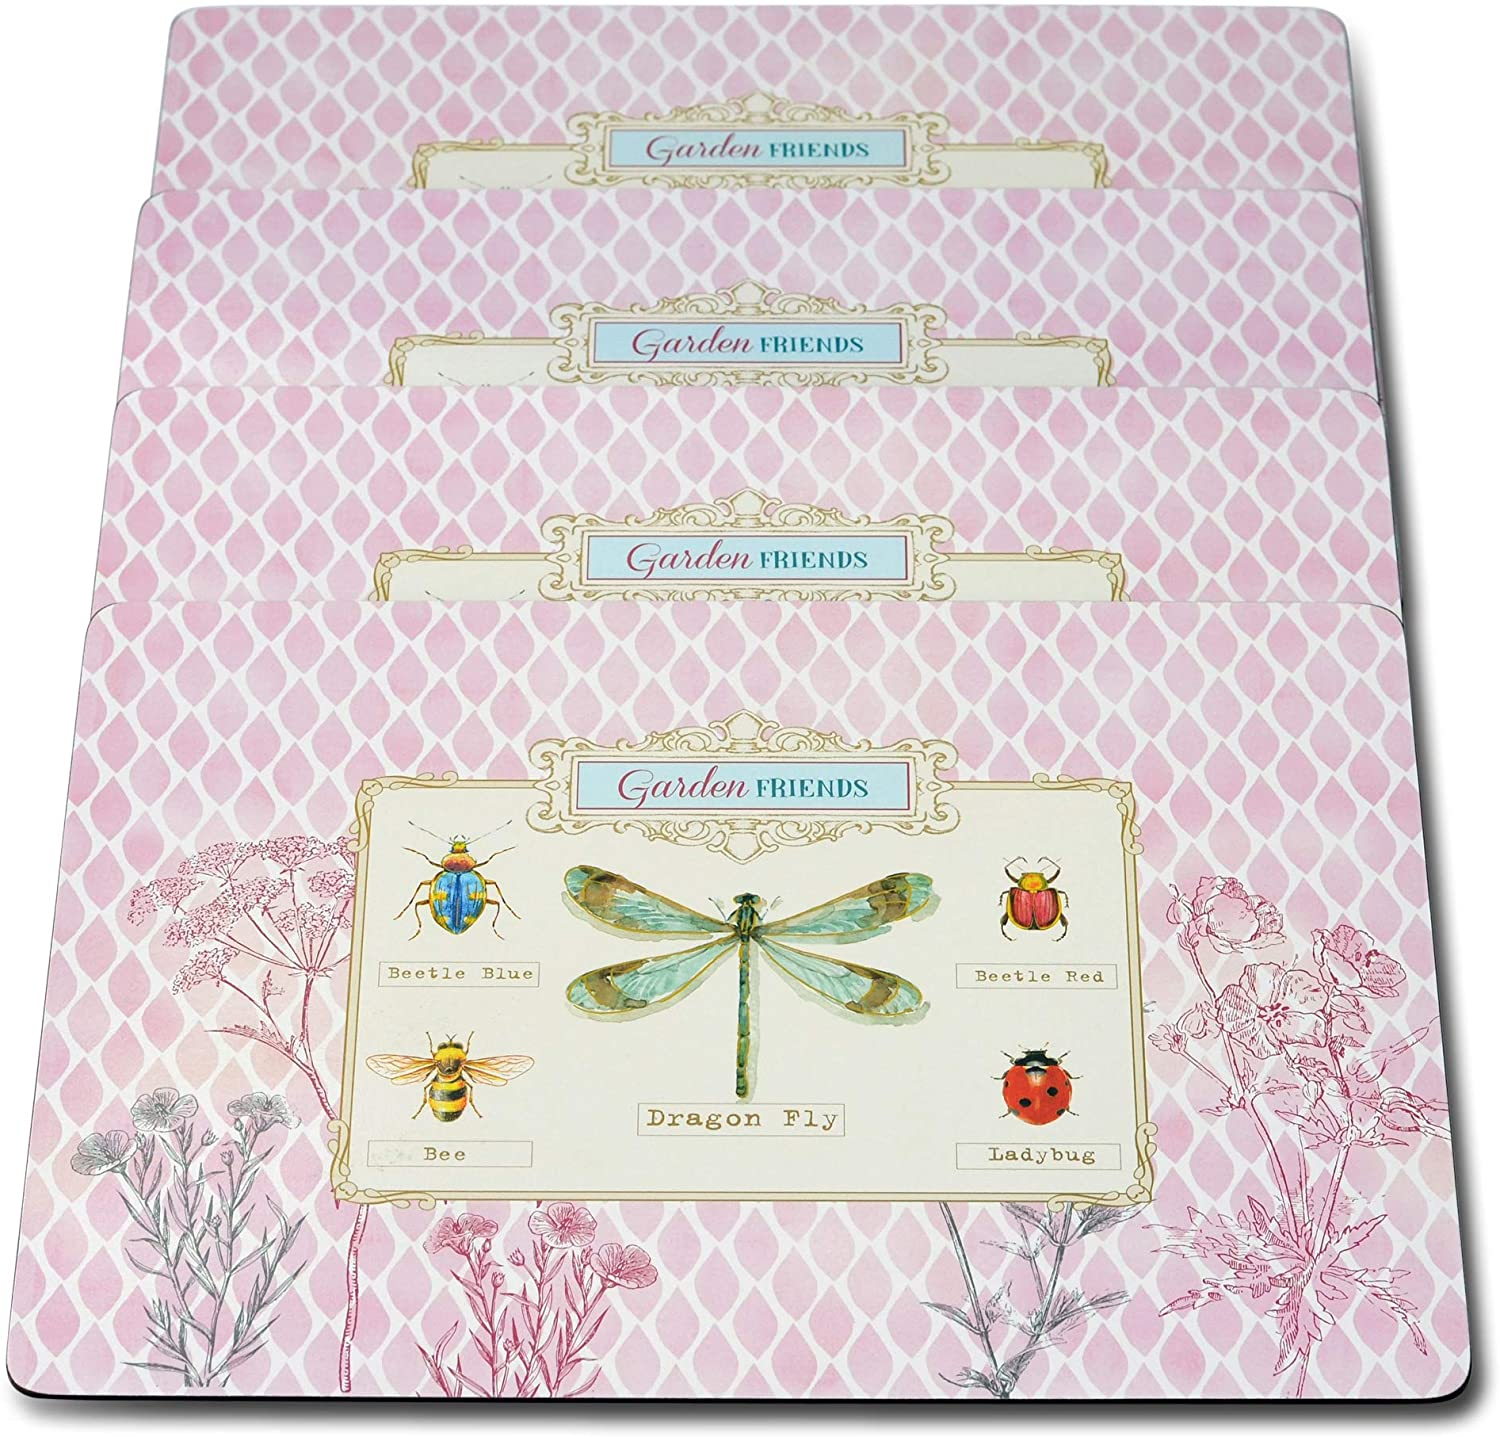 Summer Garden Friends Placemats, Laminated Boards, Cork Backing, Set of 4, Rustic Pale Pink Background with Multi Color Accents, 15 3/4 x 11 1/4 Inches, Heat Resistant